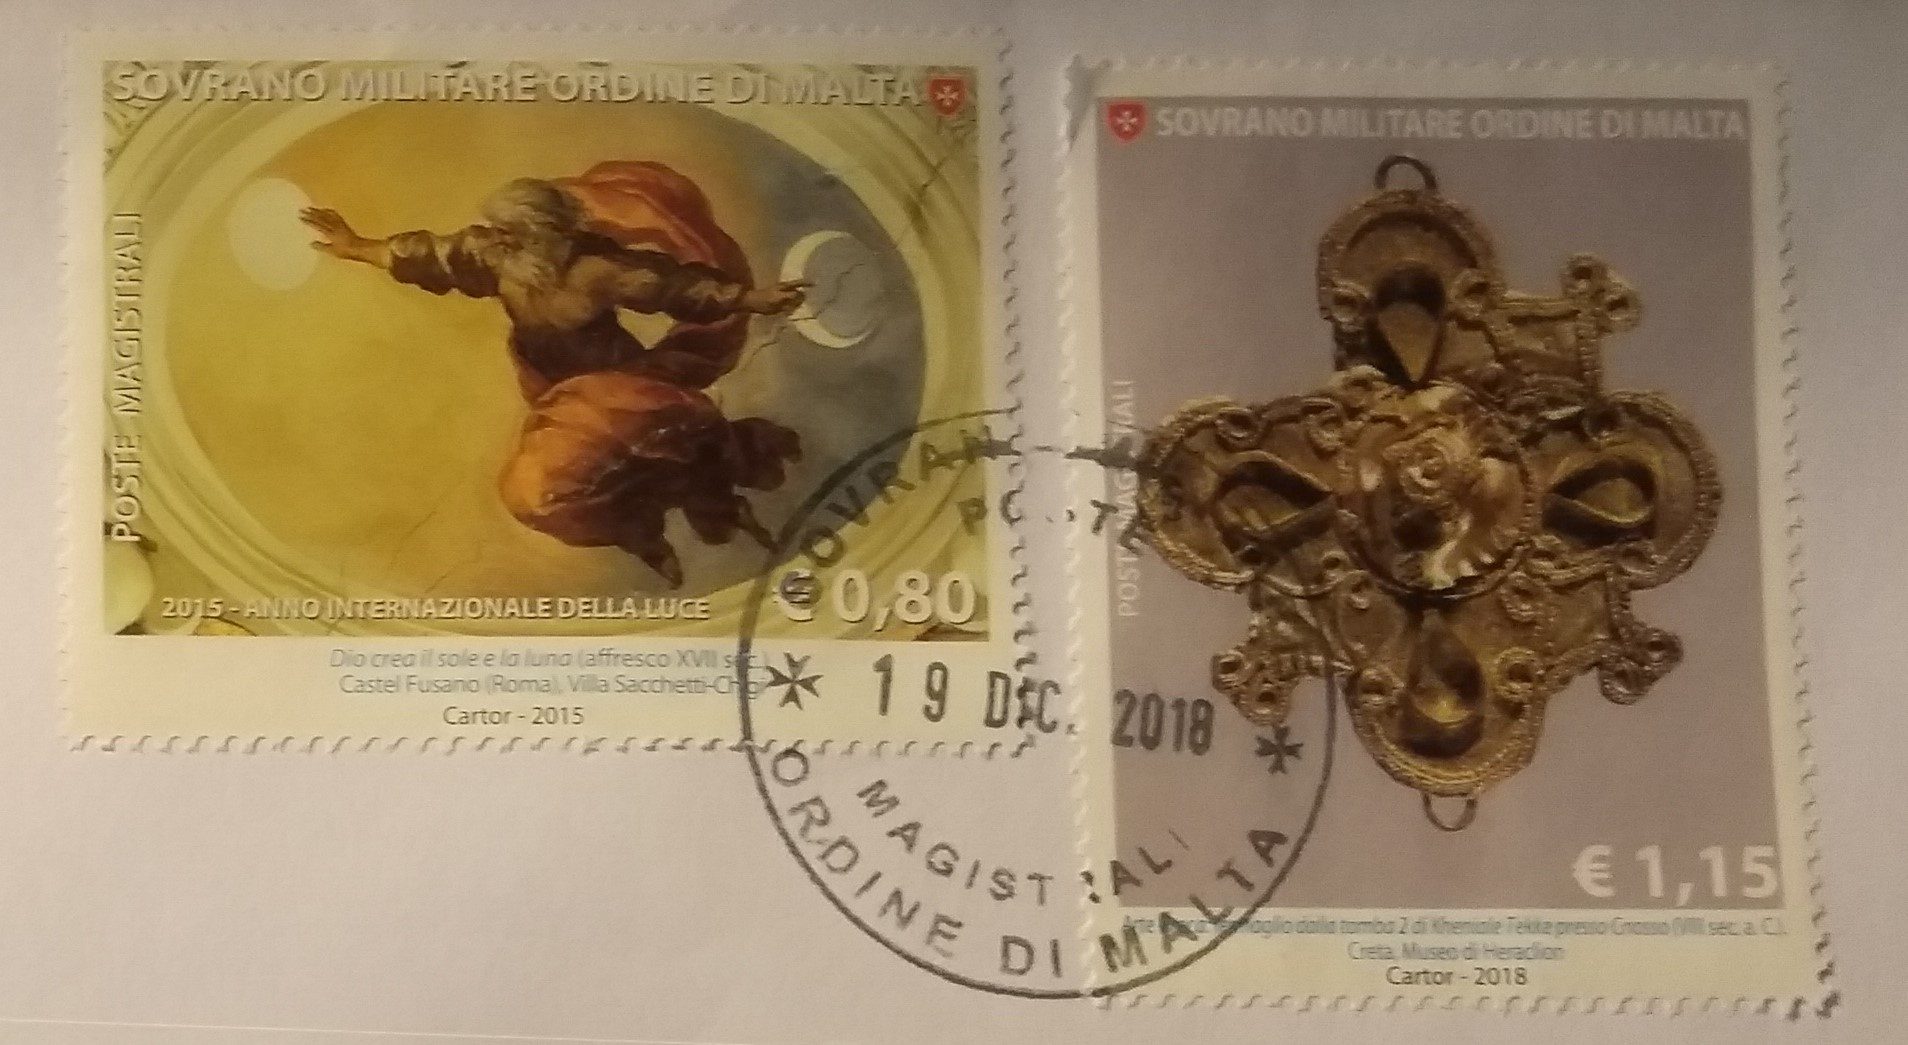 Post_Malteserorden2018_briefmarken.jpg